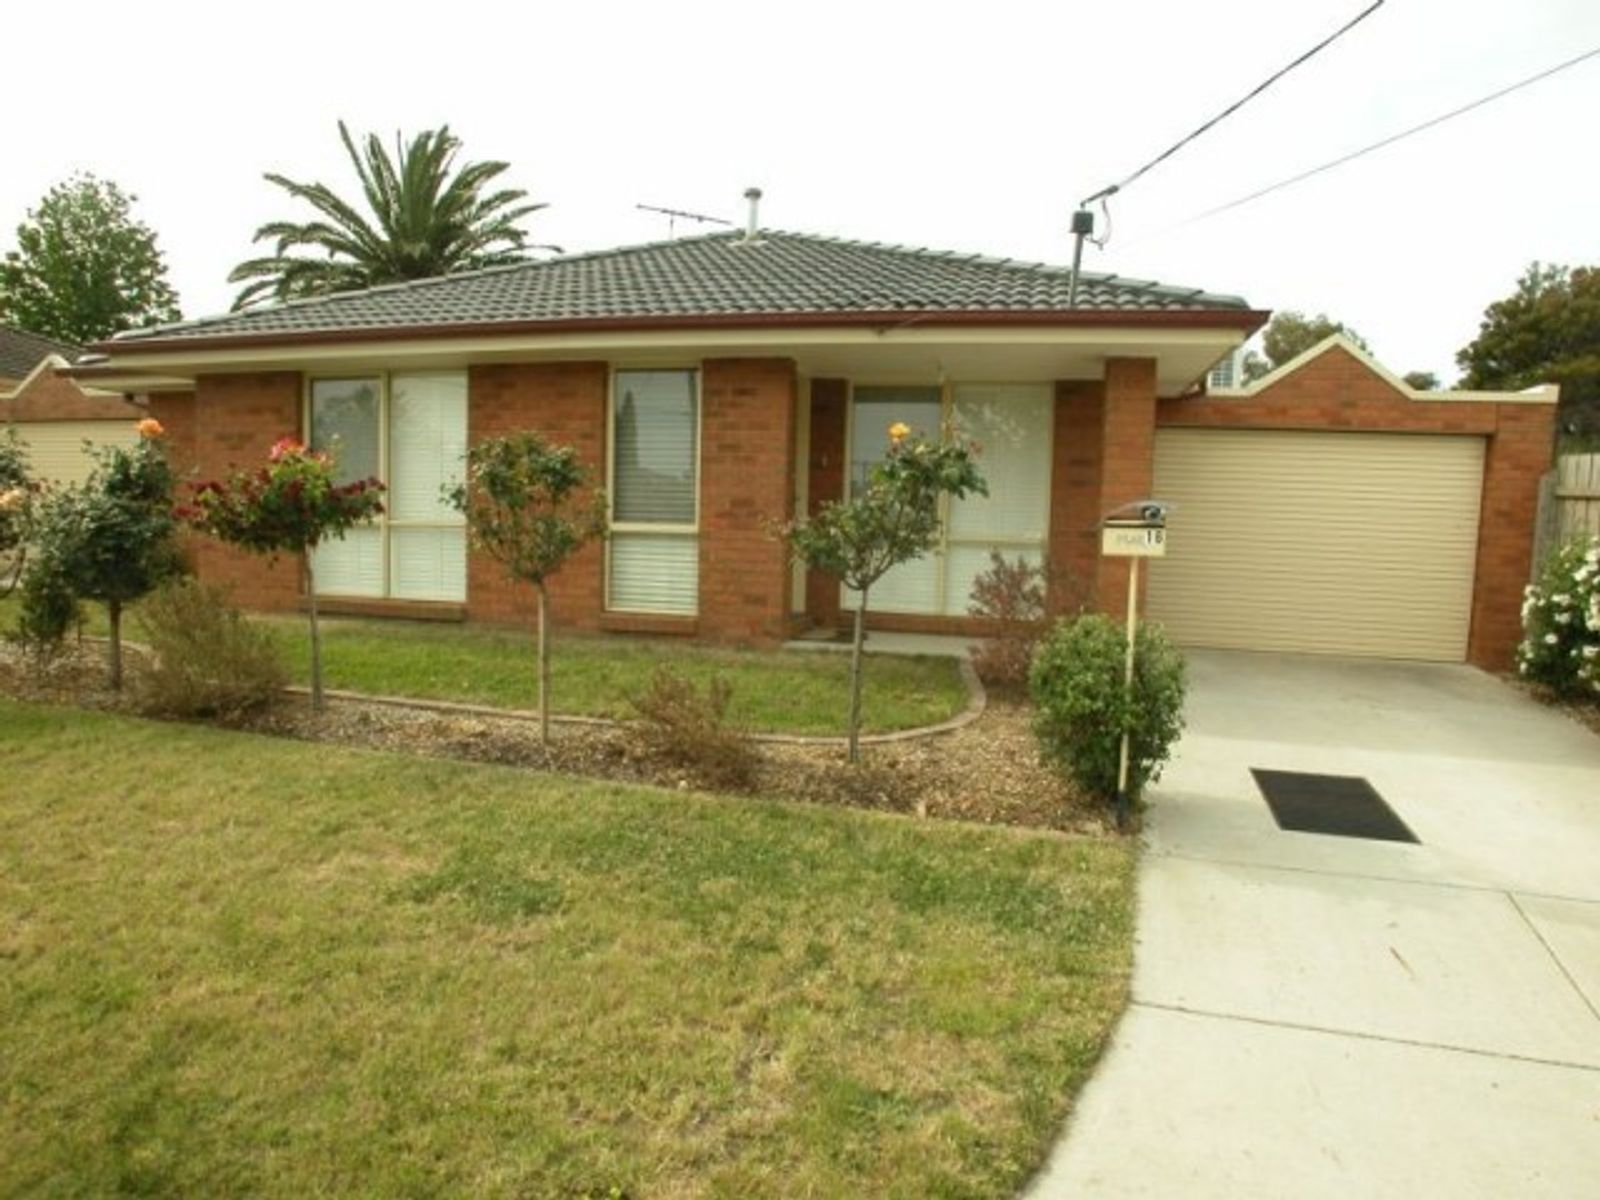 16 Bewsell Avenue, Scoresby, VIC 3179